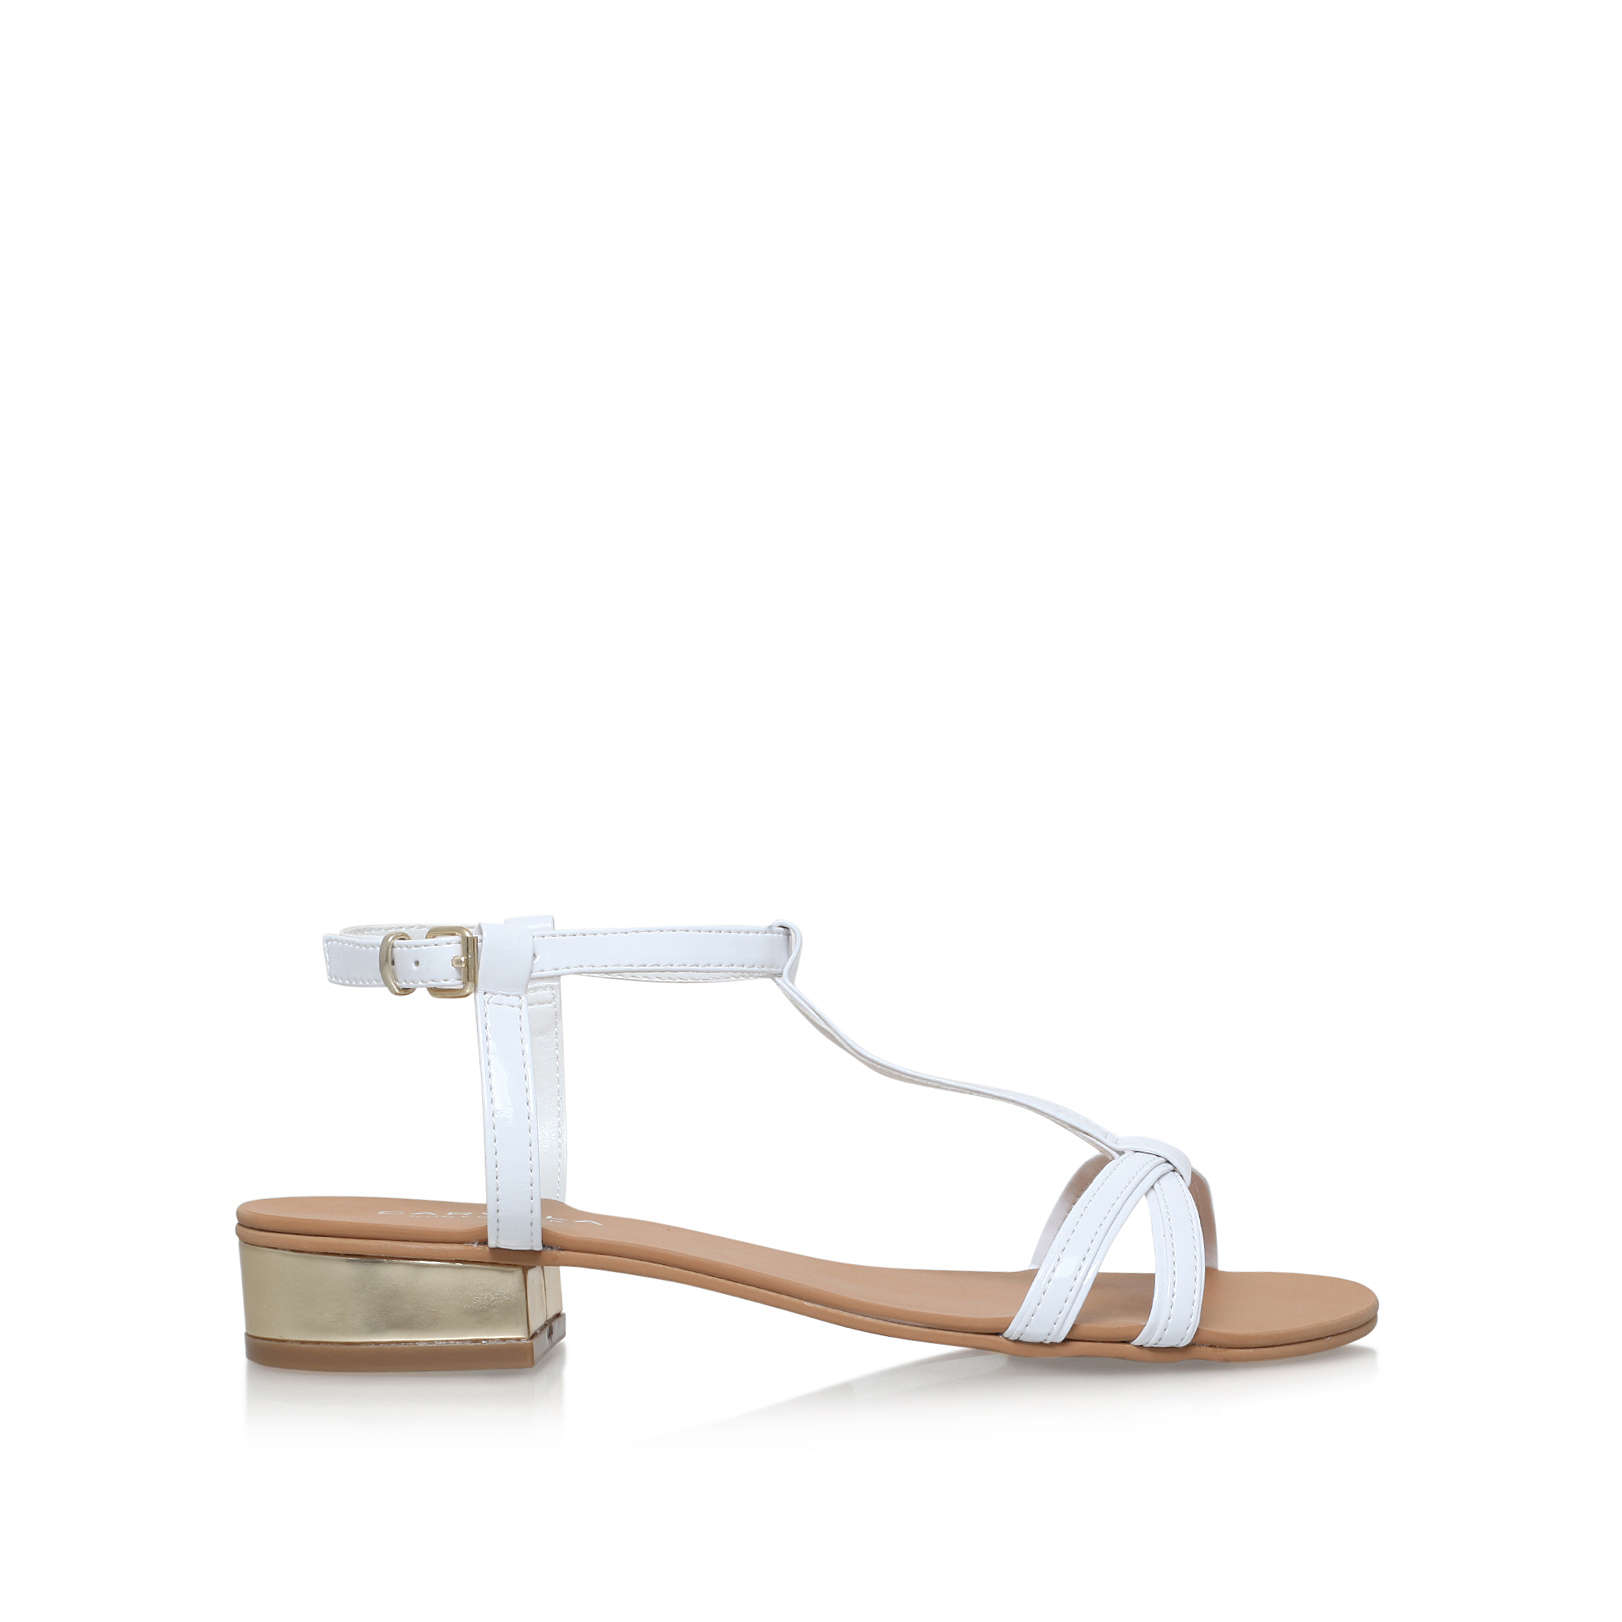 504720f45 BRAVO Carvela Bravo White Low Heel Sandals by CARVELA